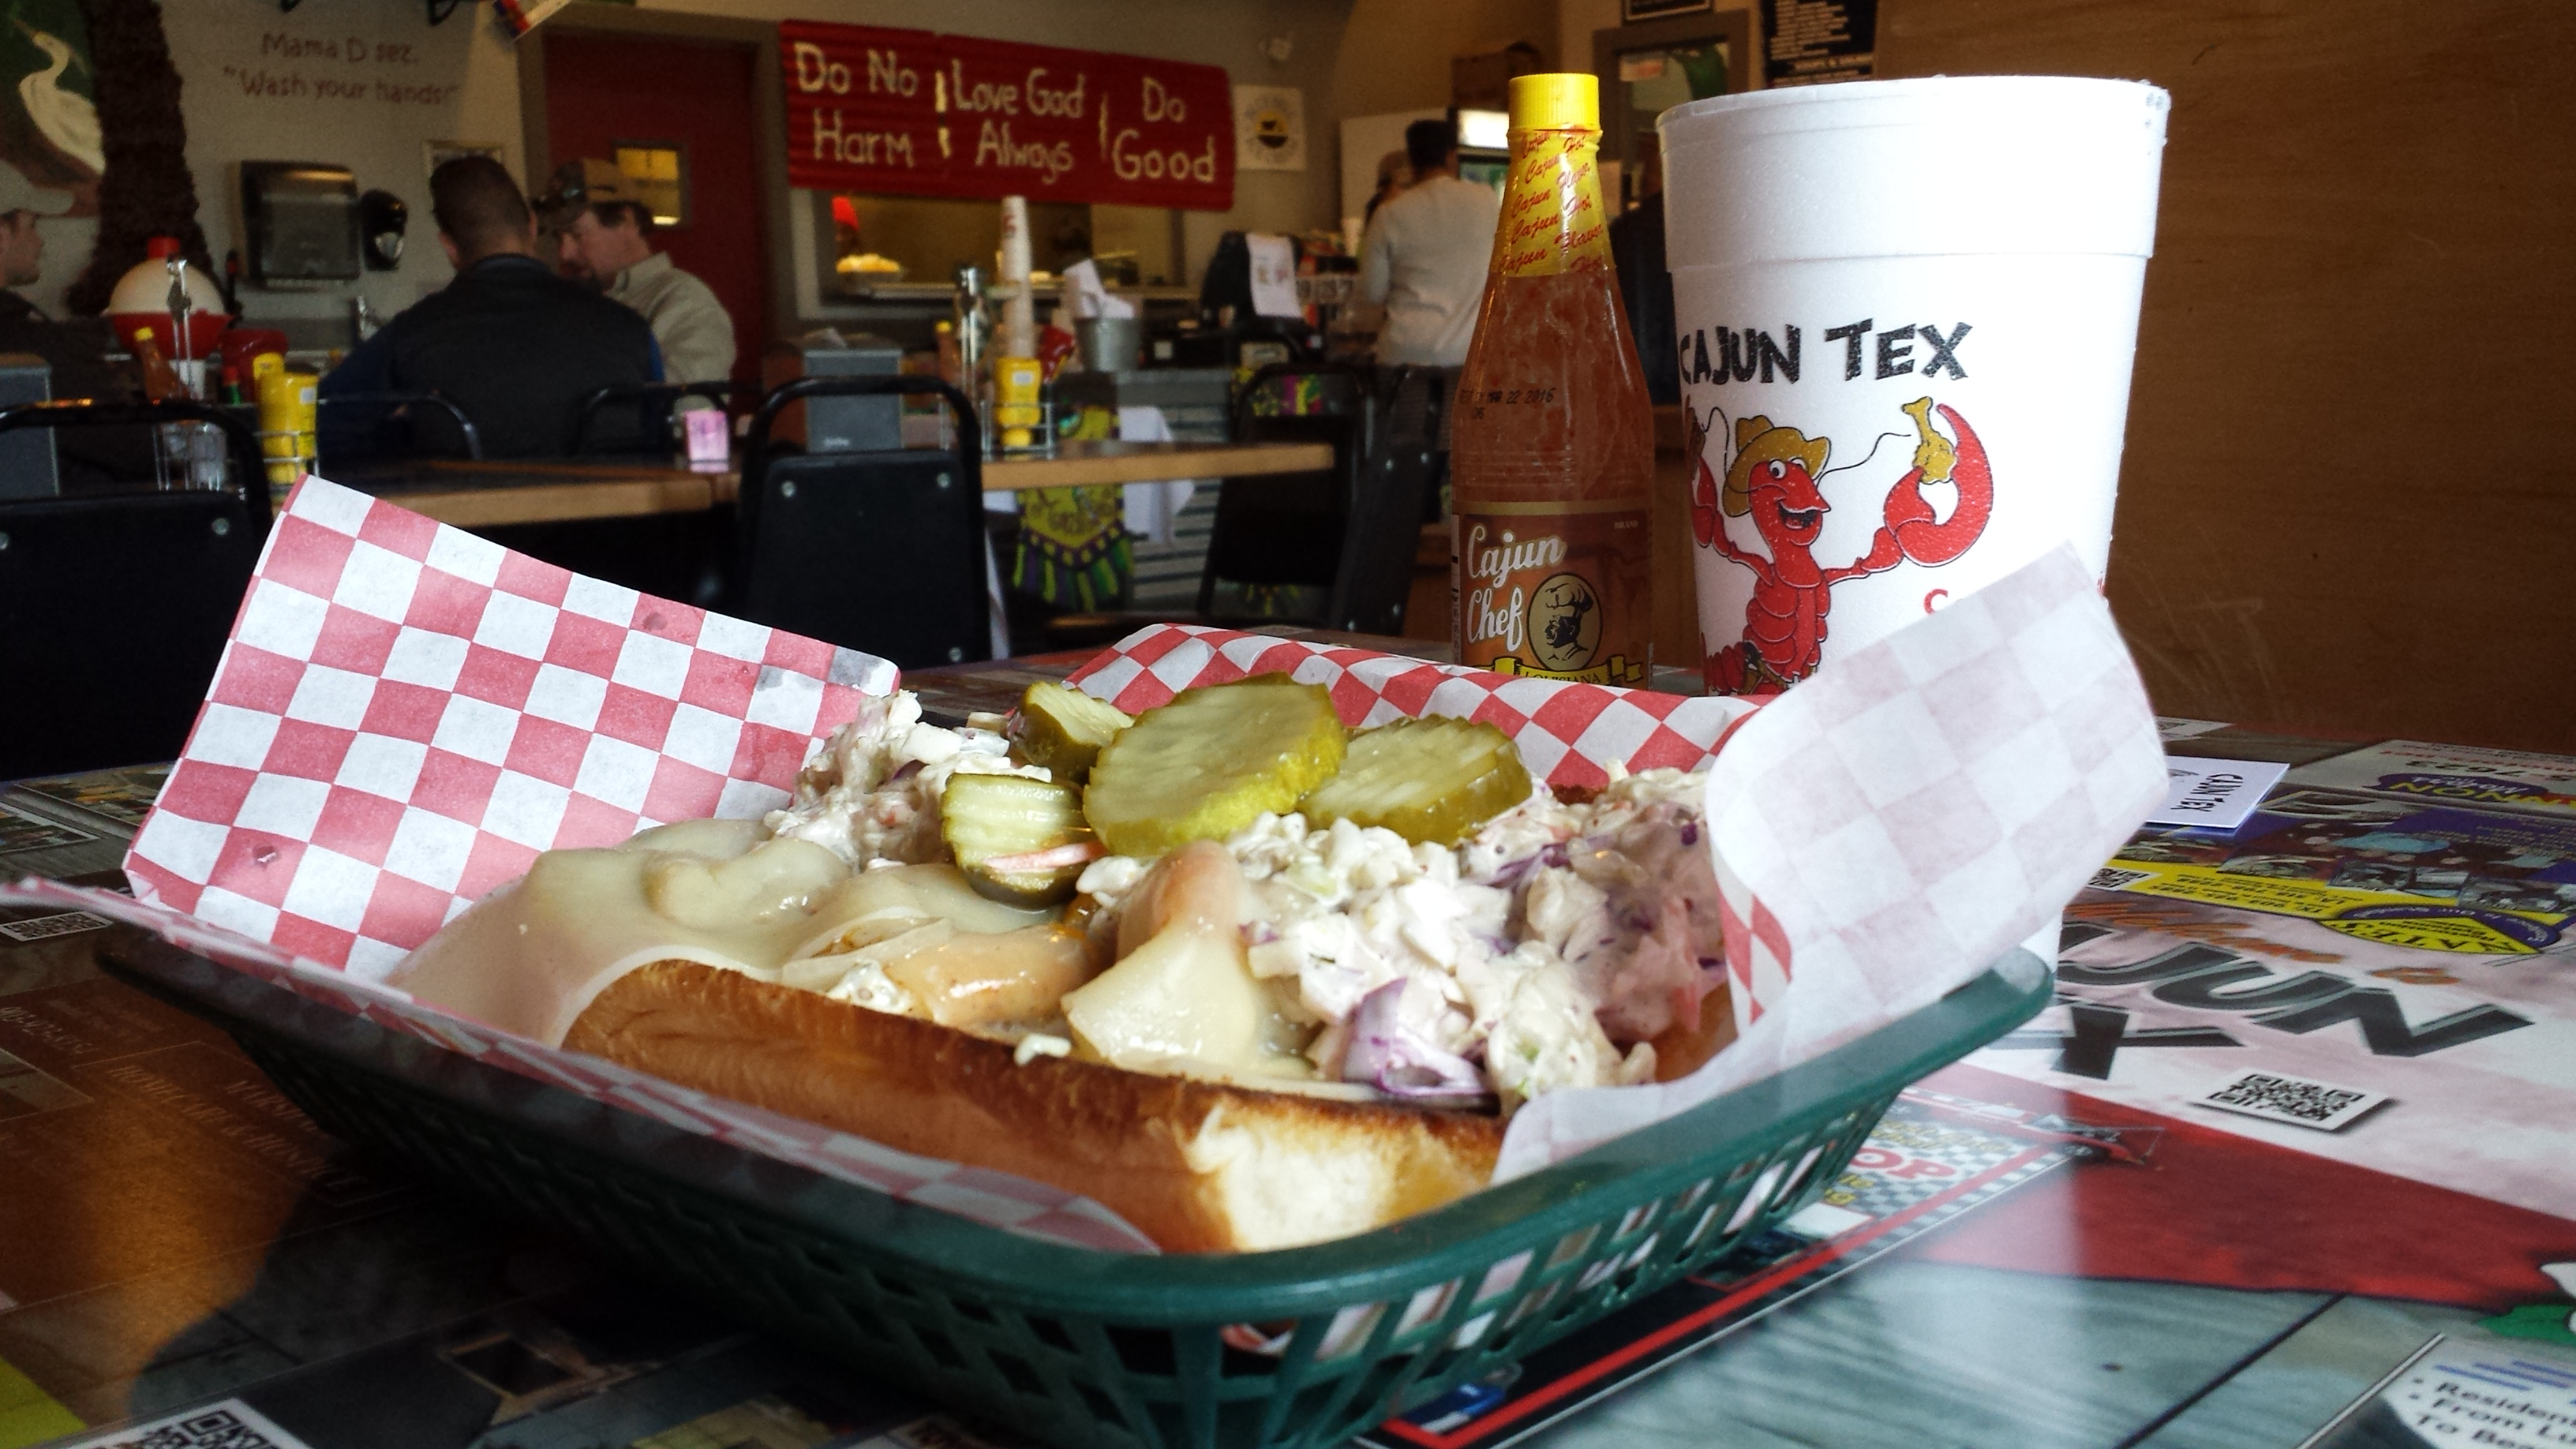 Cajun Tex Restaurant adds flavor to Marshall Texas